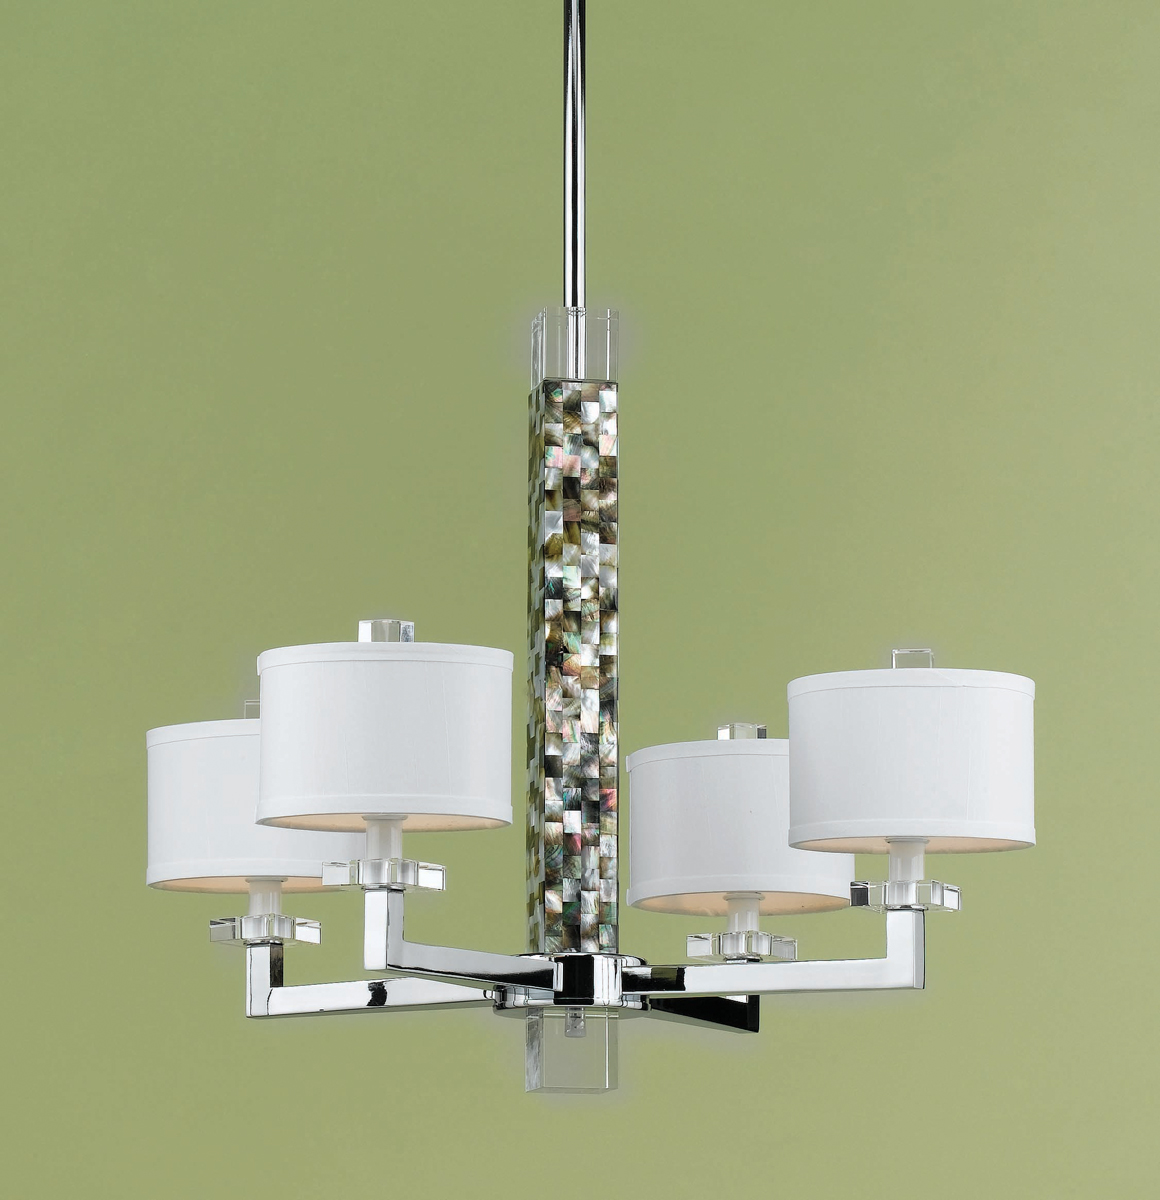 Candice Olson Collection 7454 4H Sahara 4 Light Mini Chandelier By AF Lighting